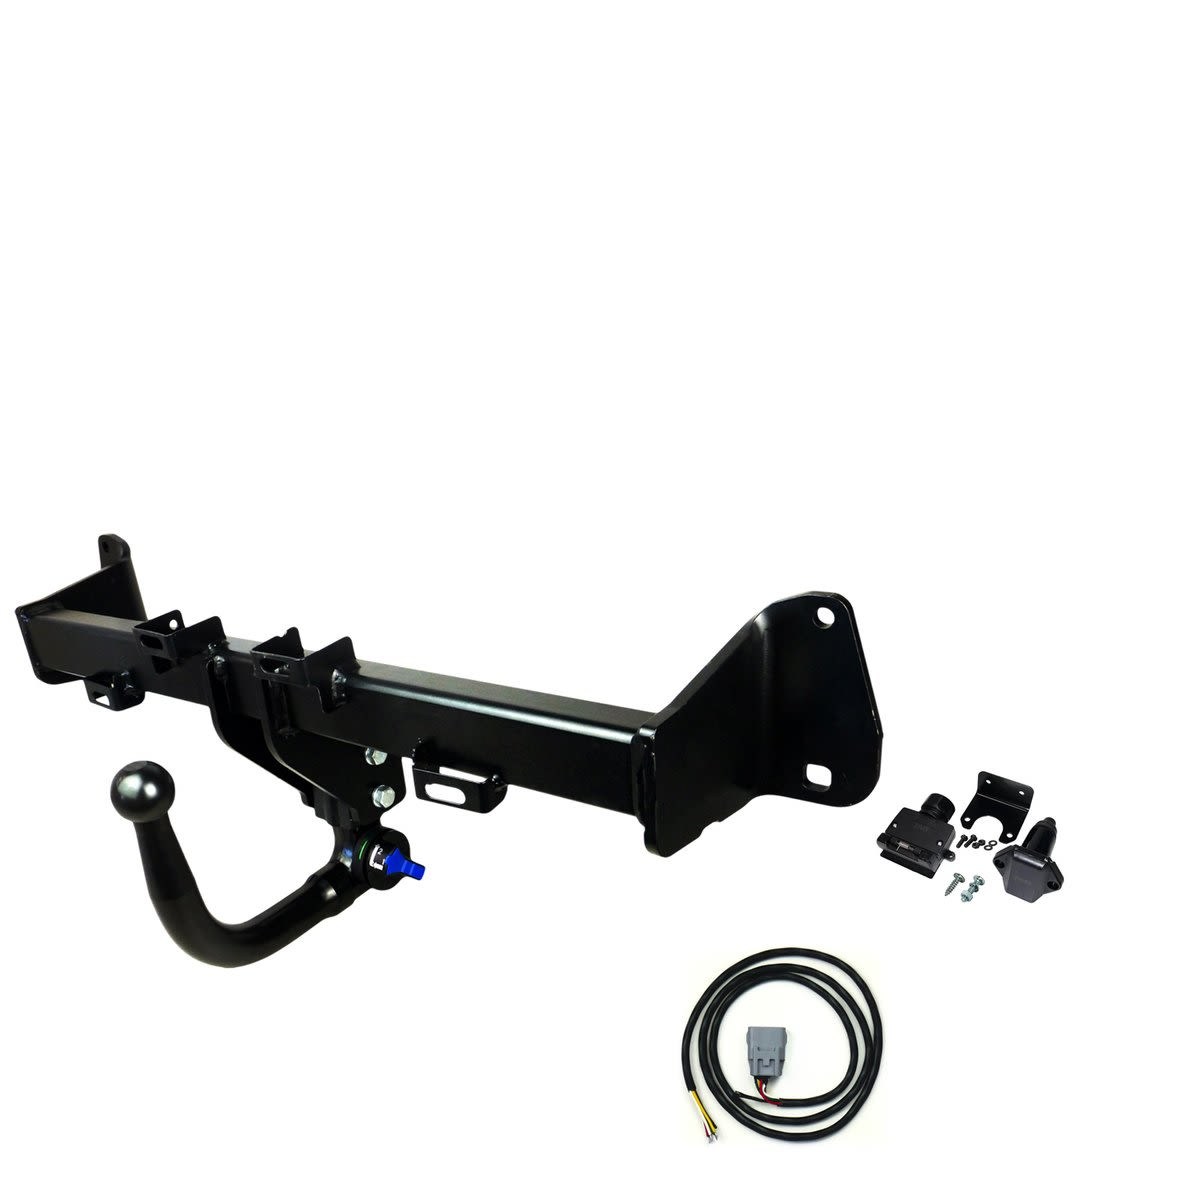 TAG Towbars European Style Tongue to suit MERCEDES-BENZ GLE-CLASS (10/2015 - 01/2018)